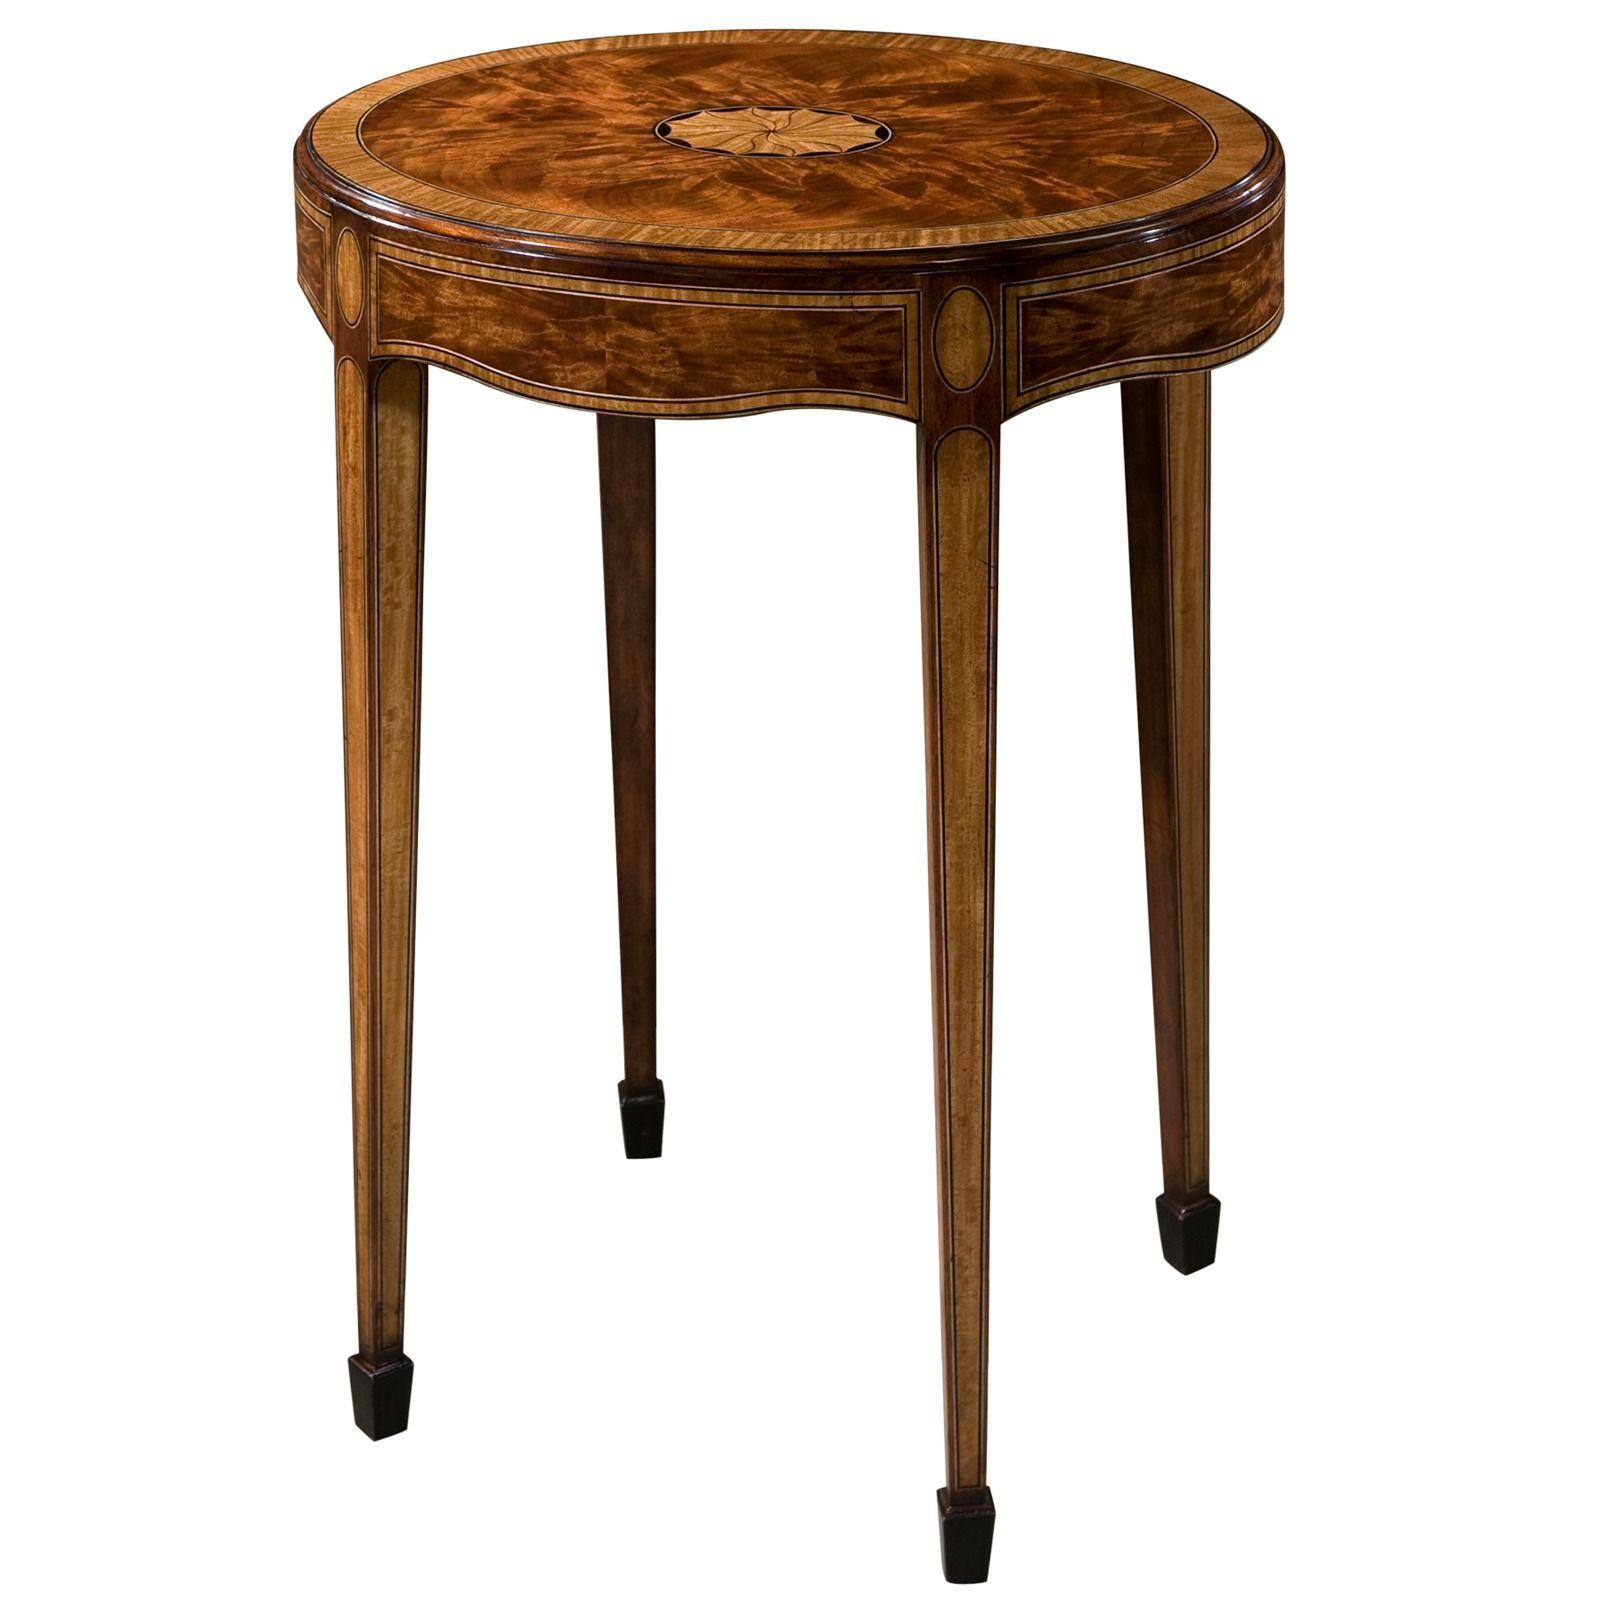 Oval flame mahogany accent table